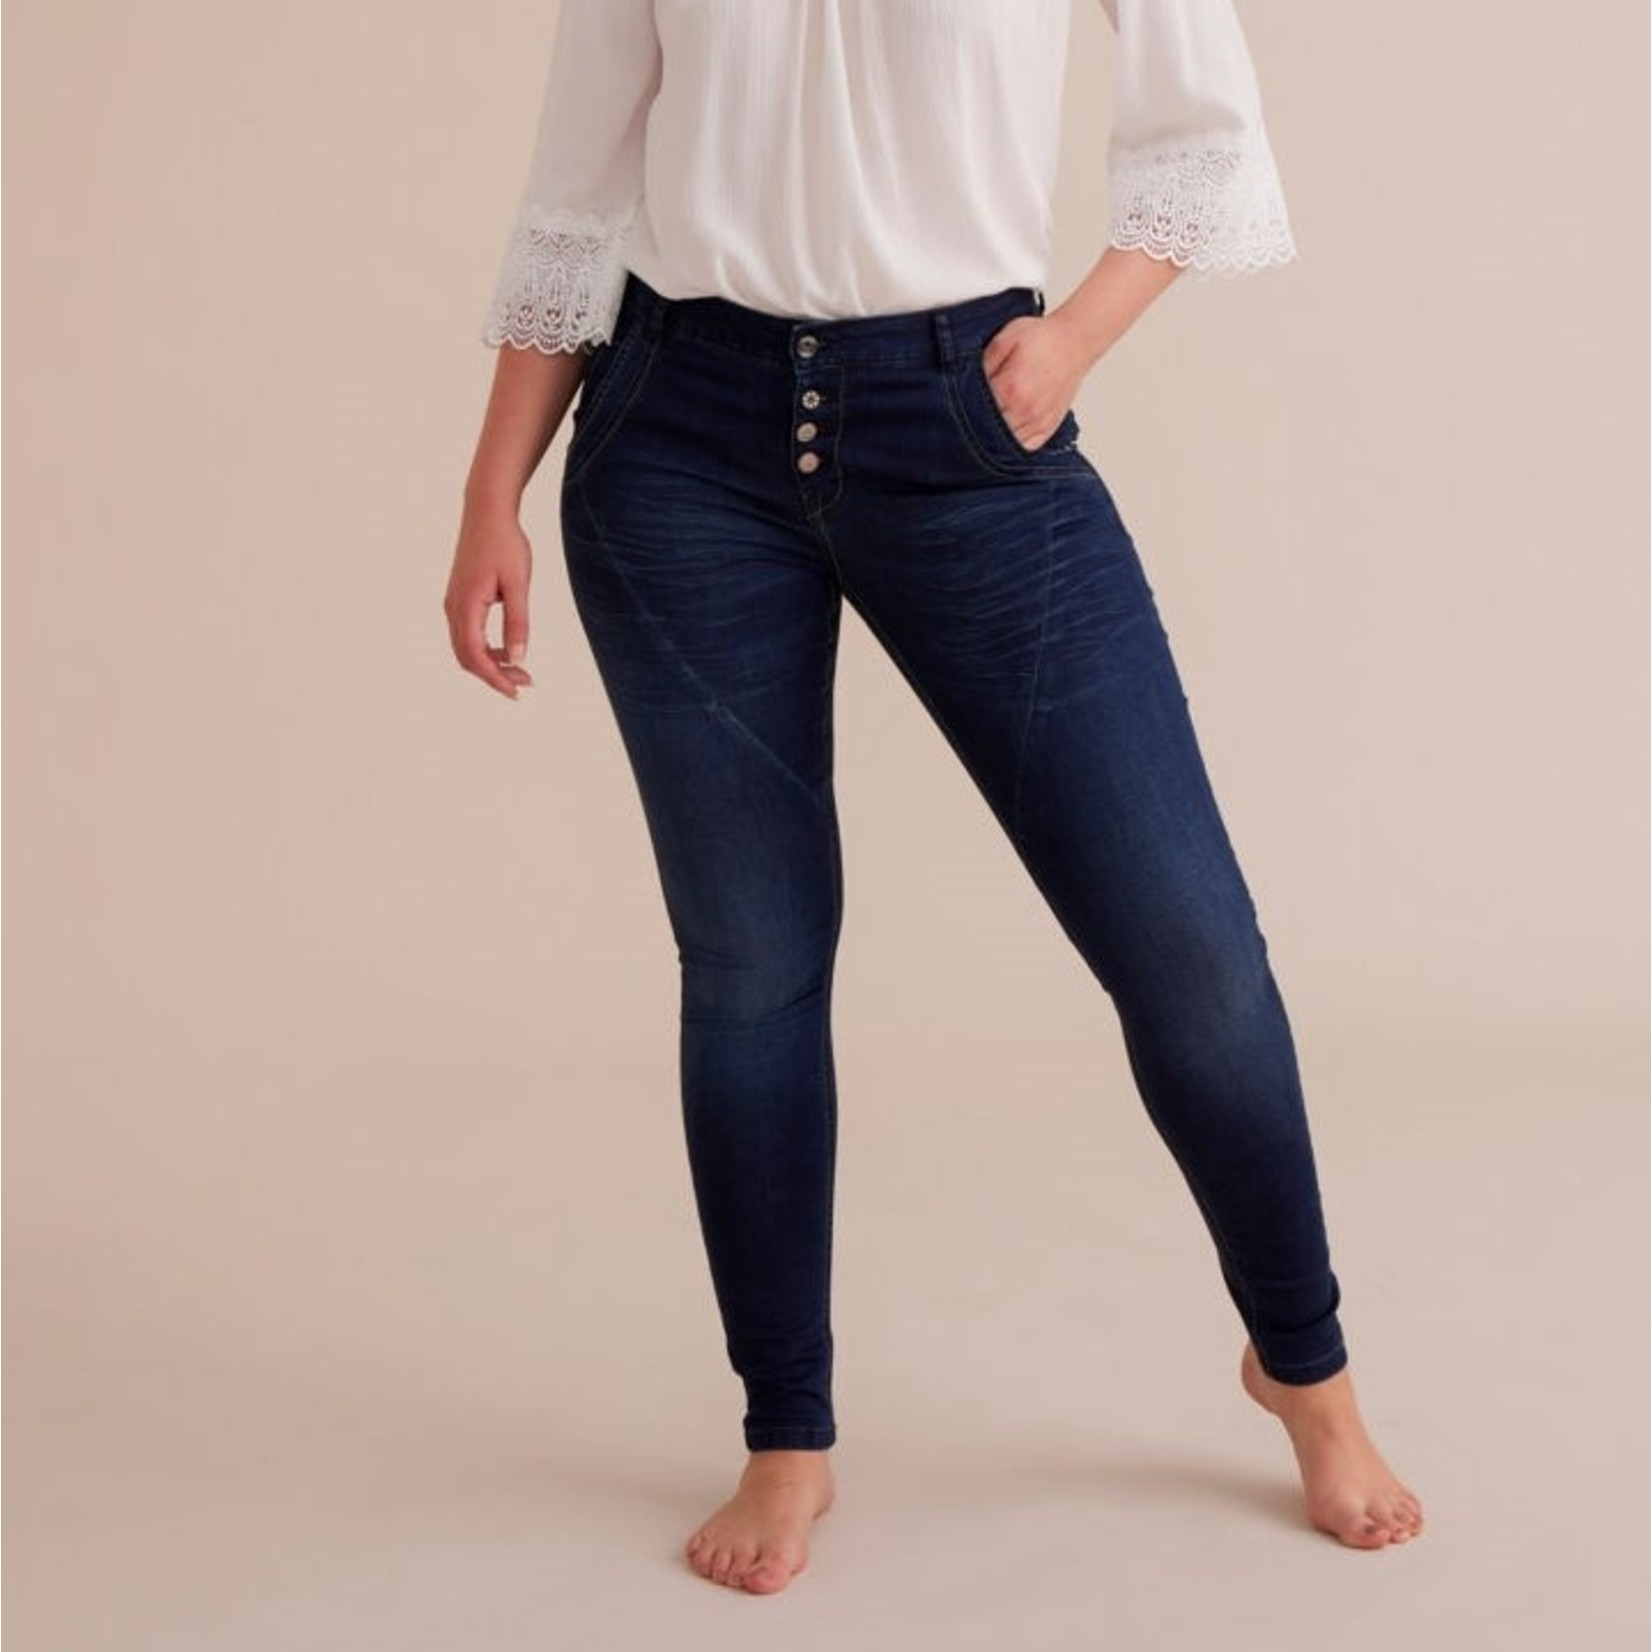 Cream Baiily Power Stretch Jeans